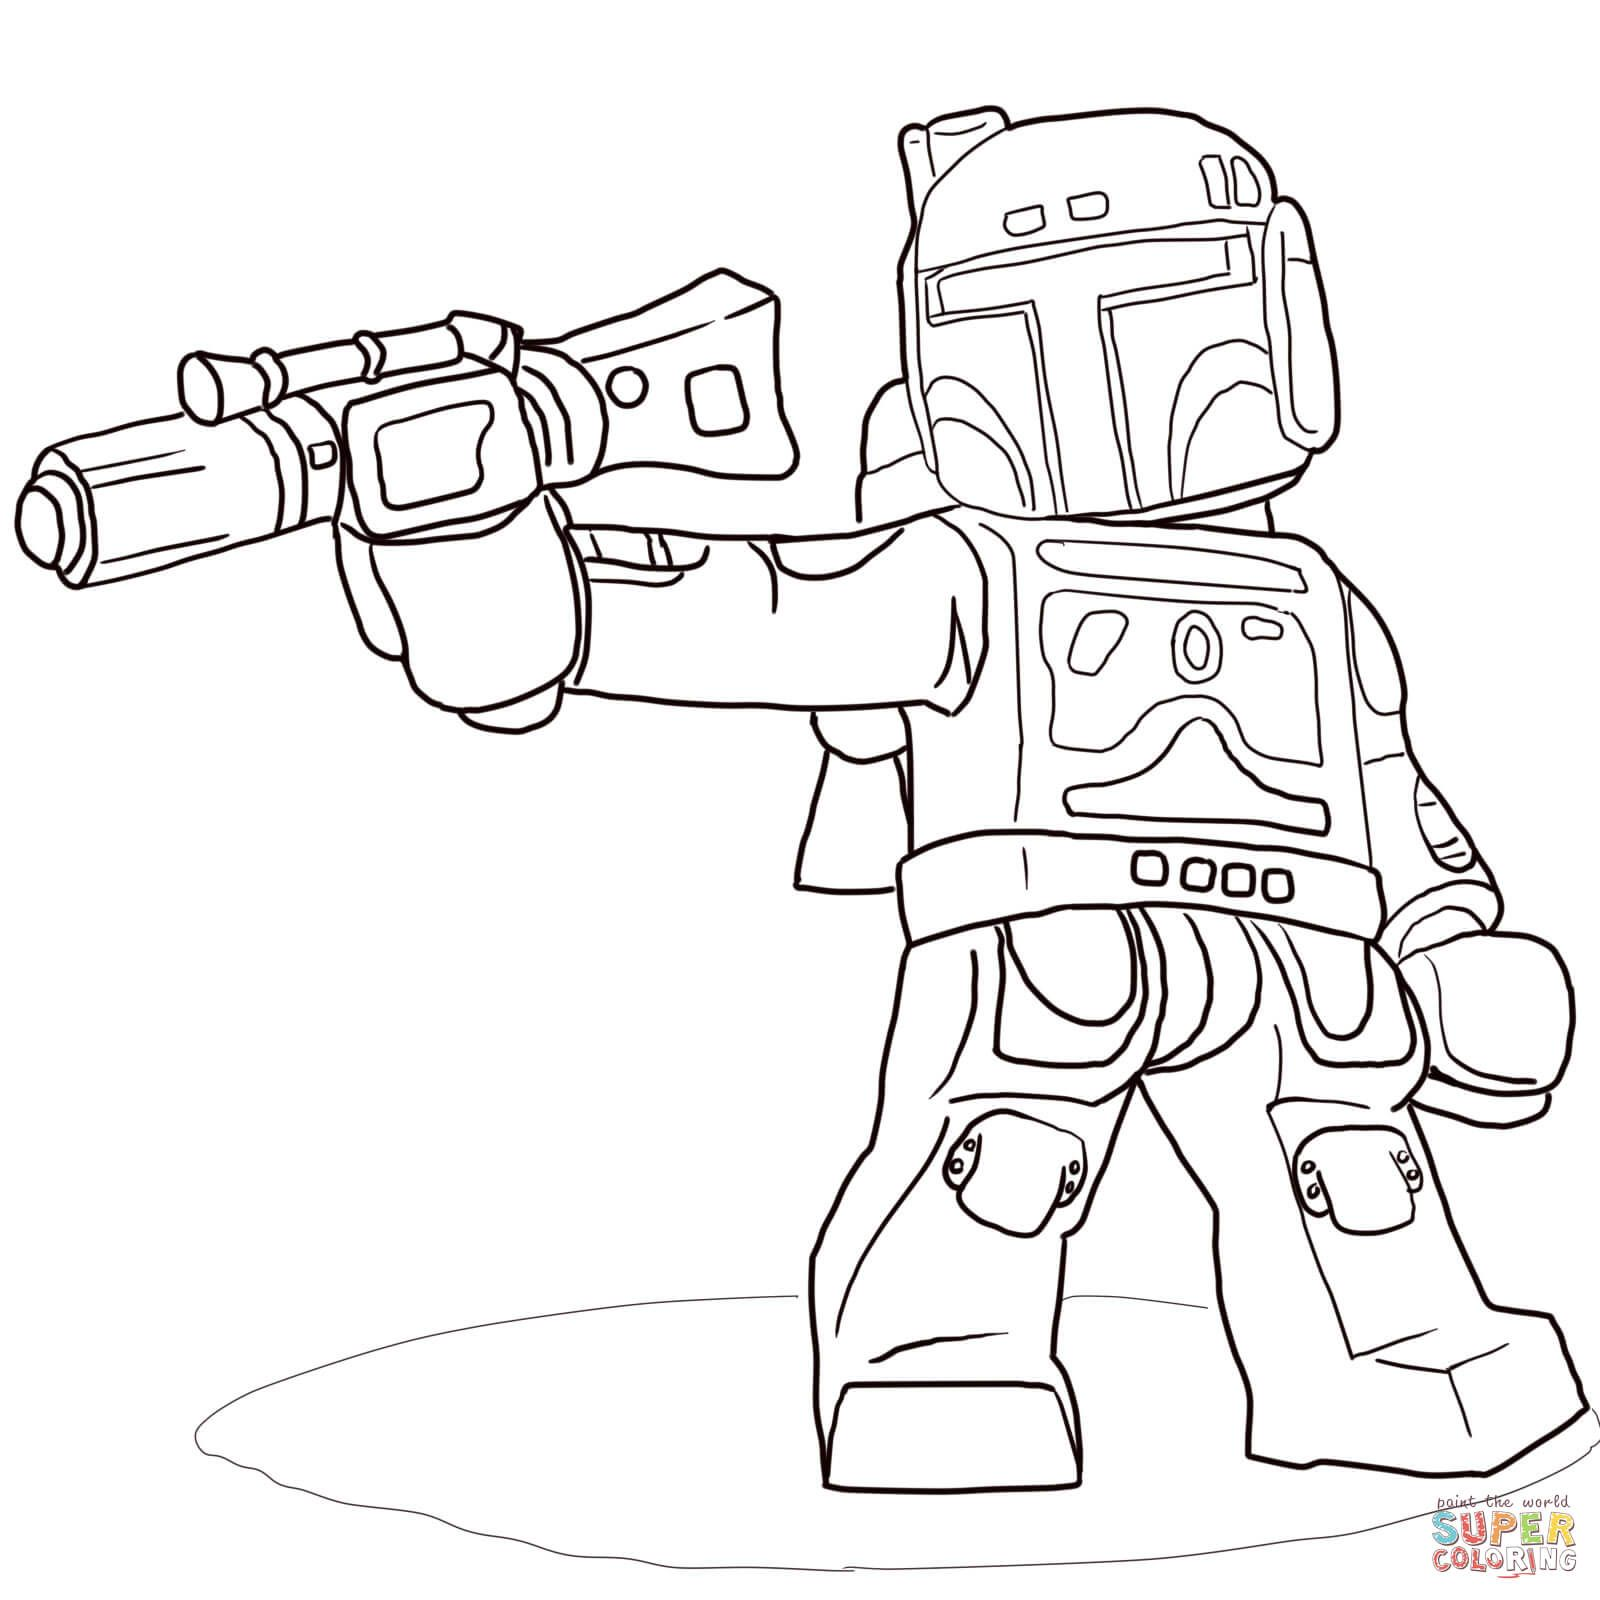 Lego Star Wars Boba Fett | Super Coloring | Babies | Pinterest ...